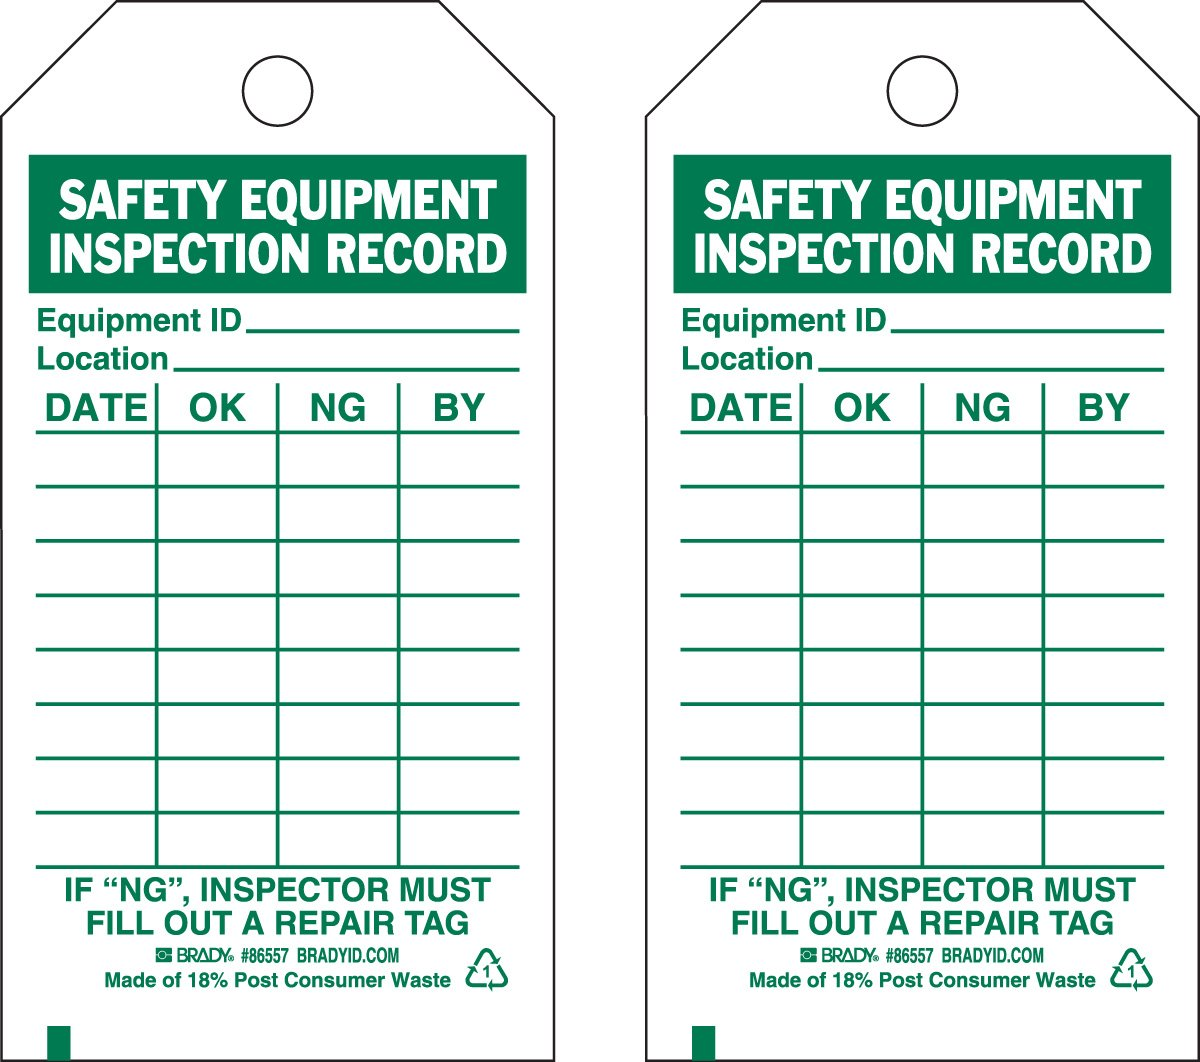 Brady 86557 5 3/4'' Height x 3'' Width, Economy Polyester (B-851), Green on White Safety Equipment Tags (10 Tags)